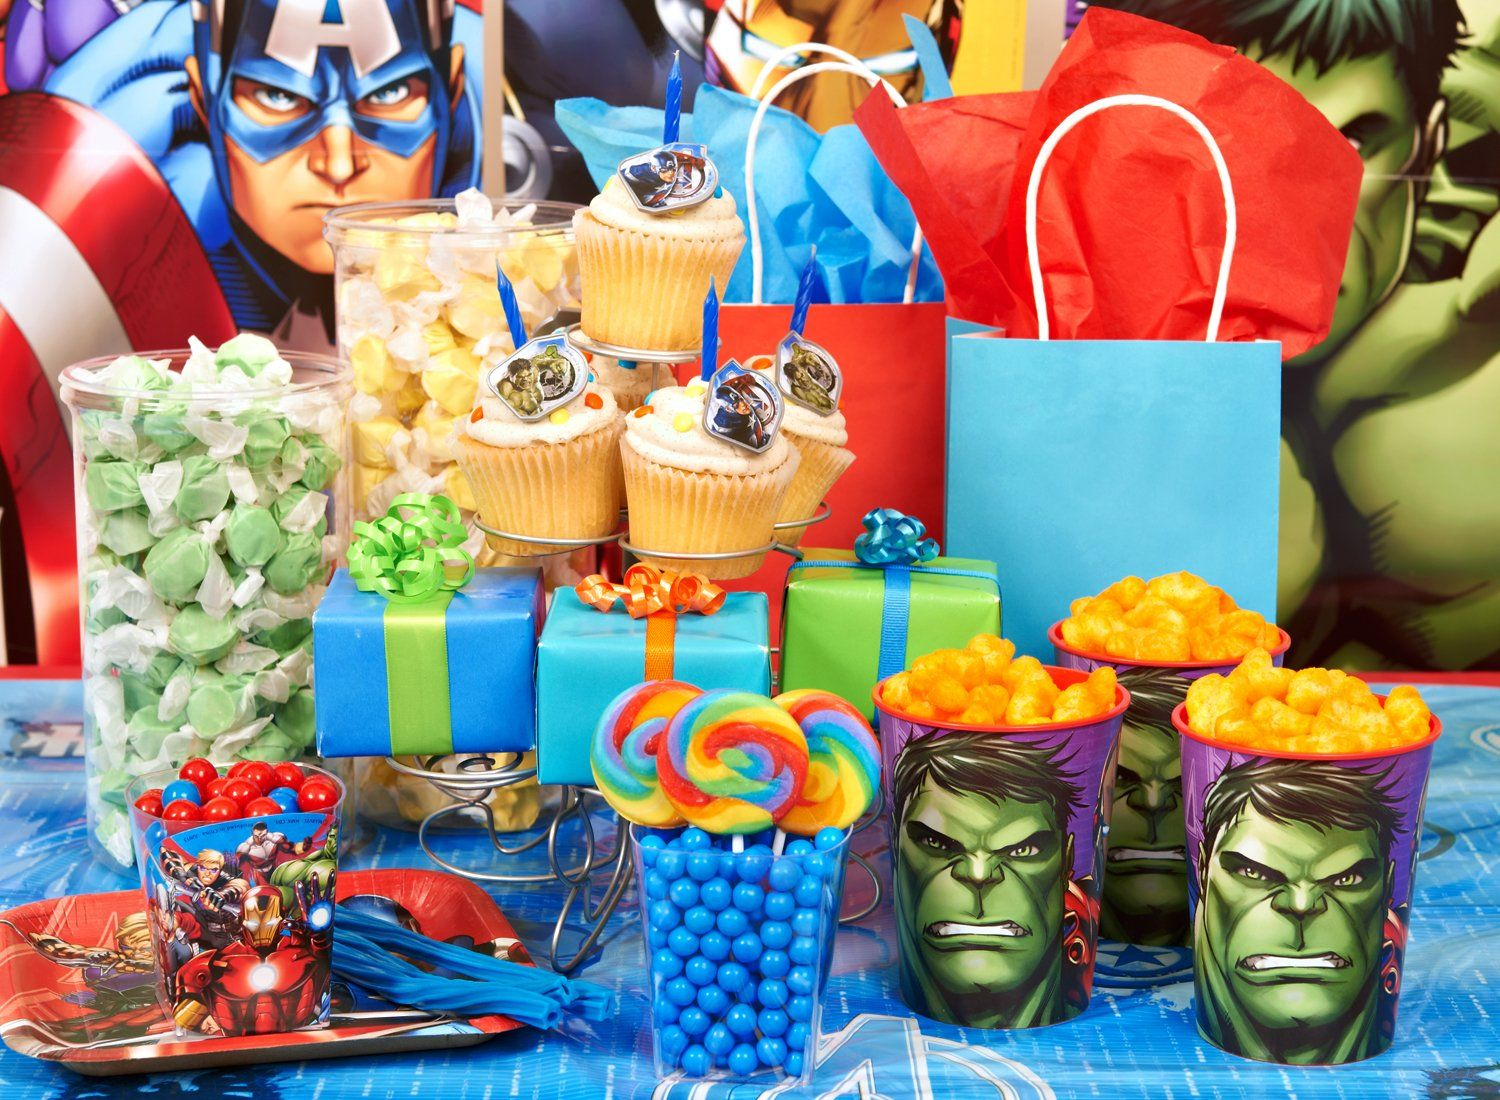 Avengers Party Decorations Avengers Party Pack Party Ware Decorations Favors And More For